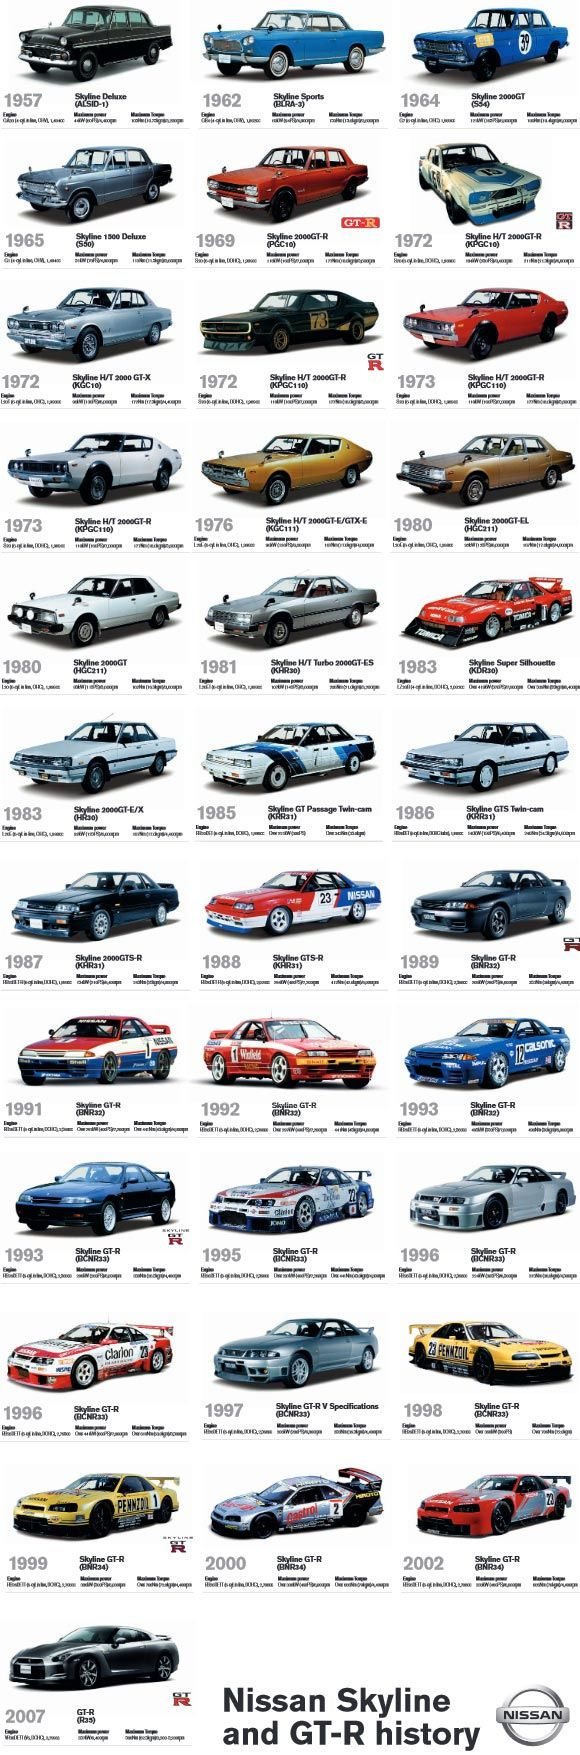 A history of the Nissan Skyline and GT-R